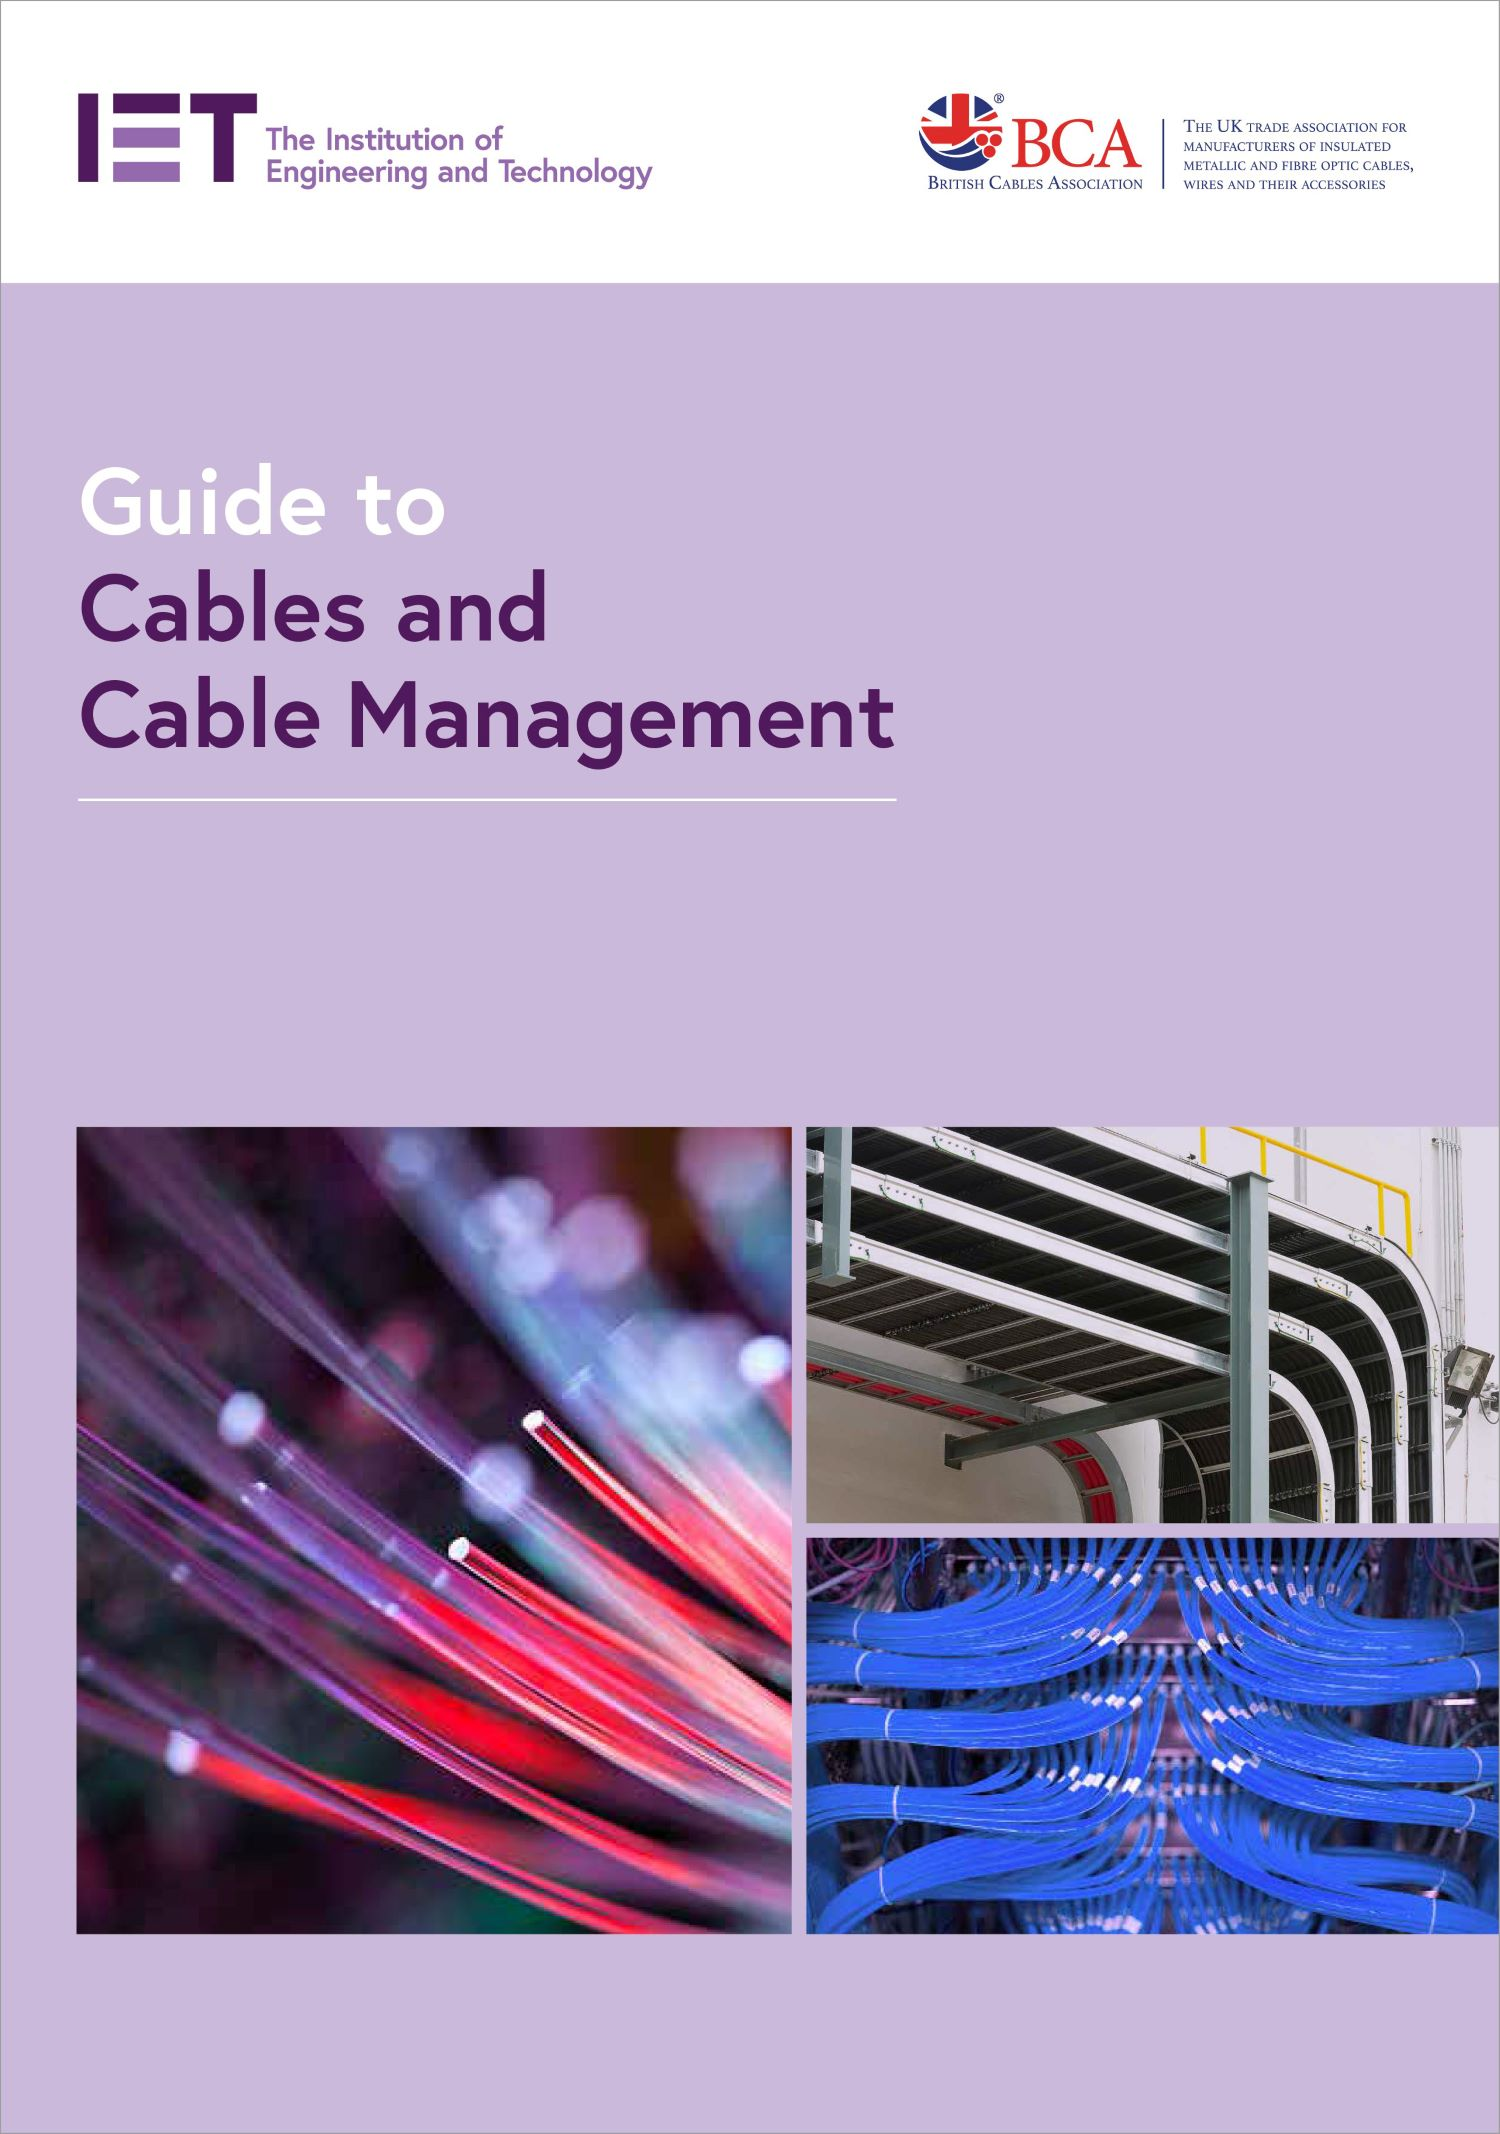 Guide to Cables and Cable Management